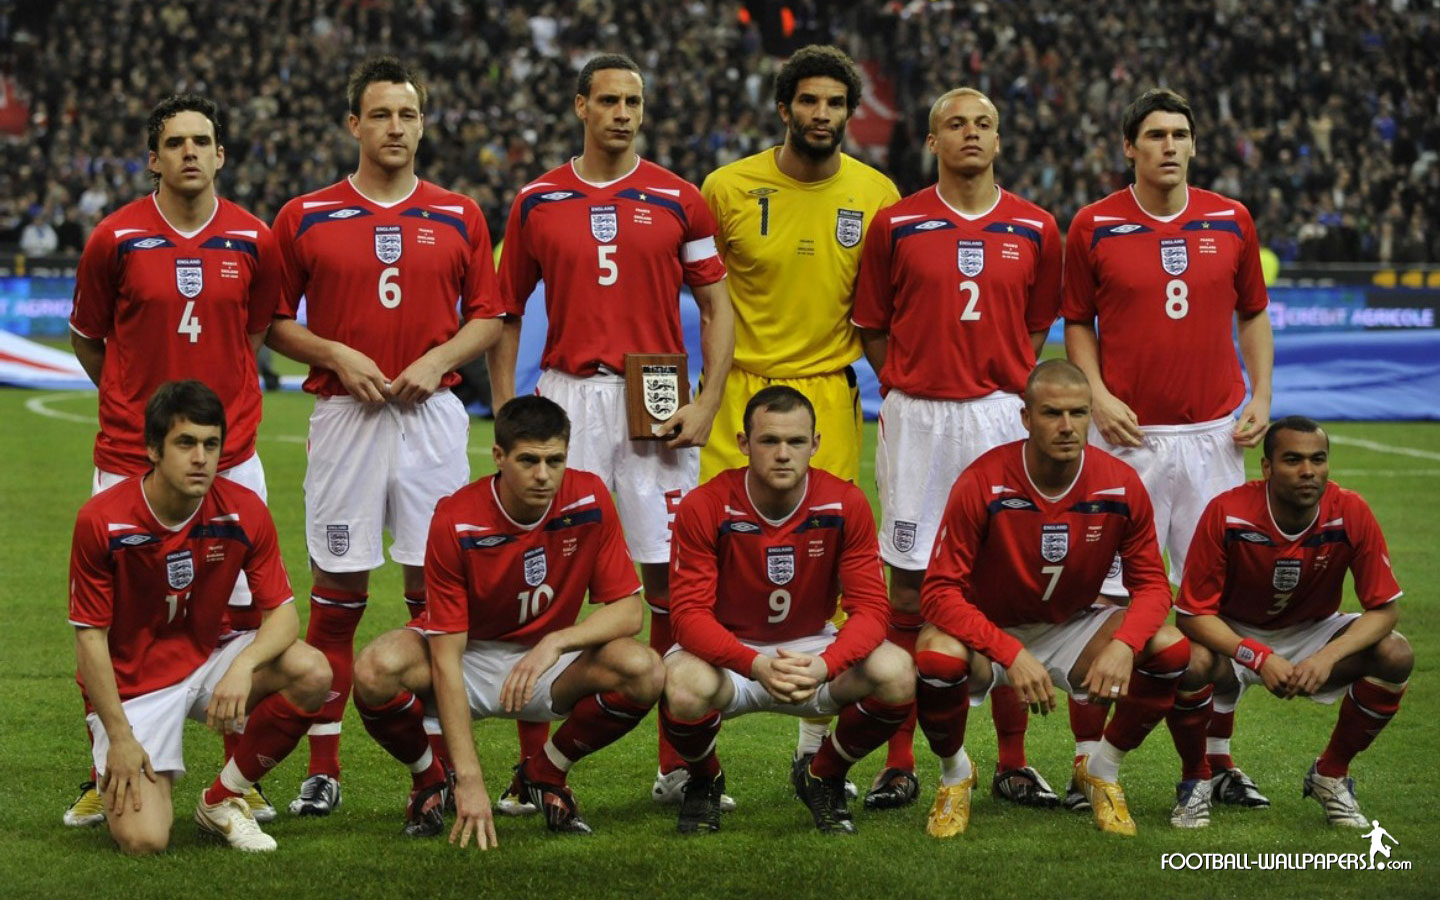 England National Team Wallpaper 8 Football Wallpapers and Videos 1440x900